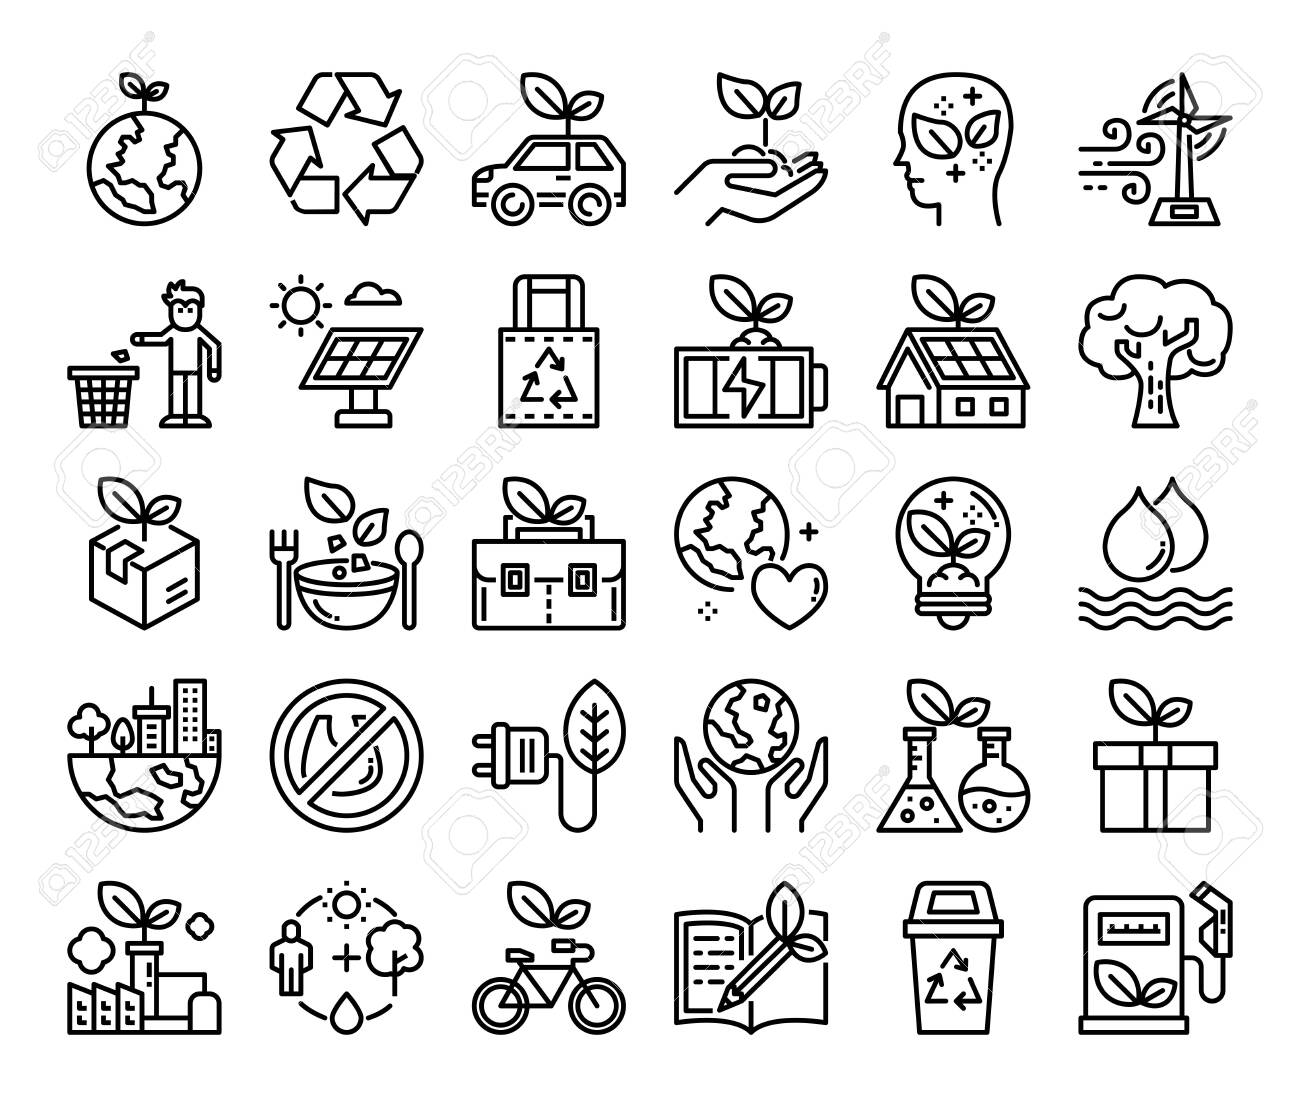 ecology outline vector icons save the earth concept - 146589513